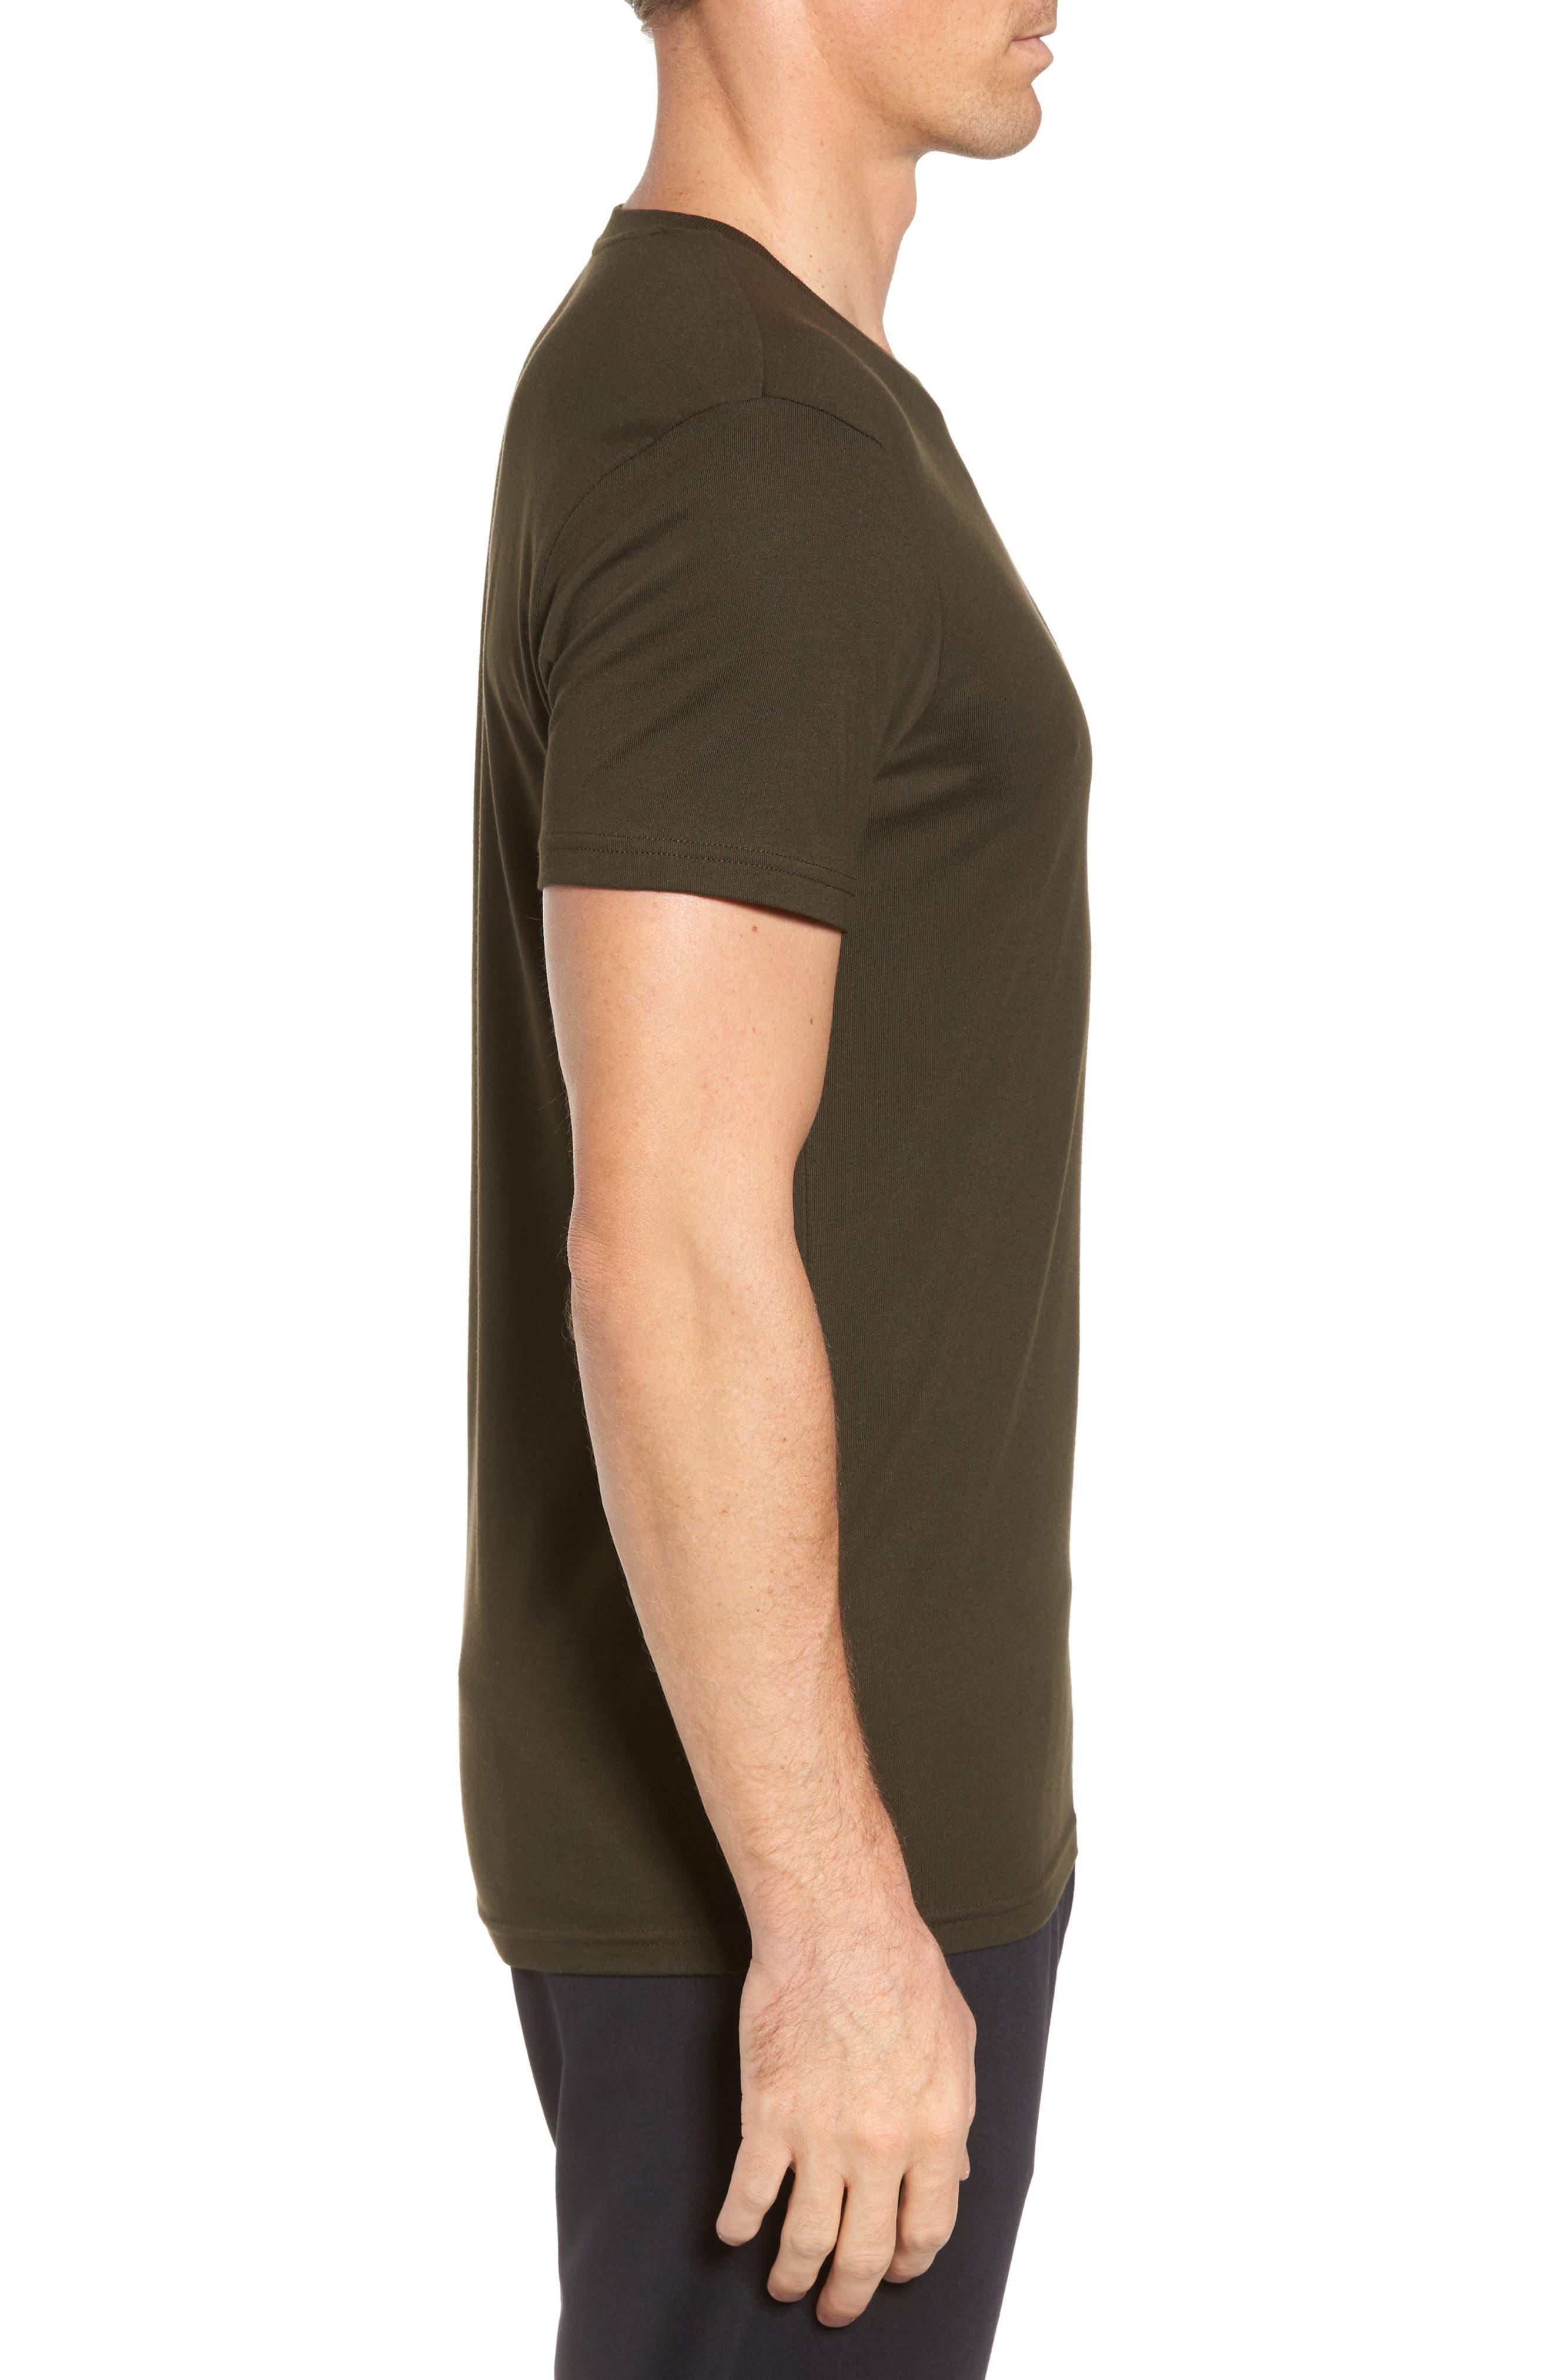 Supreme Comfort Short Sleeve Pajama Top,                             Alternate thumbnail 3, color,                             Rich Olive/ Chic Cream